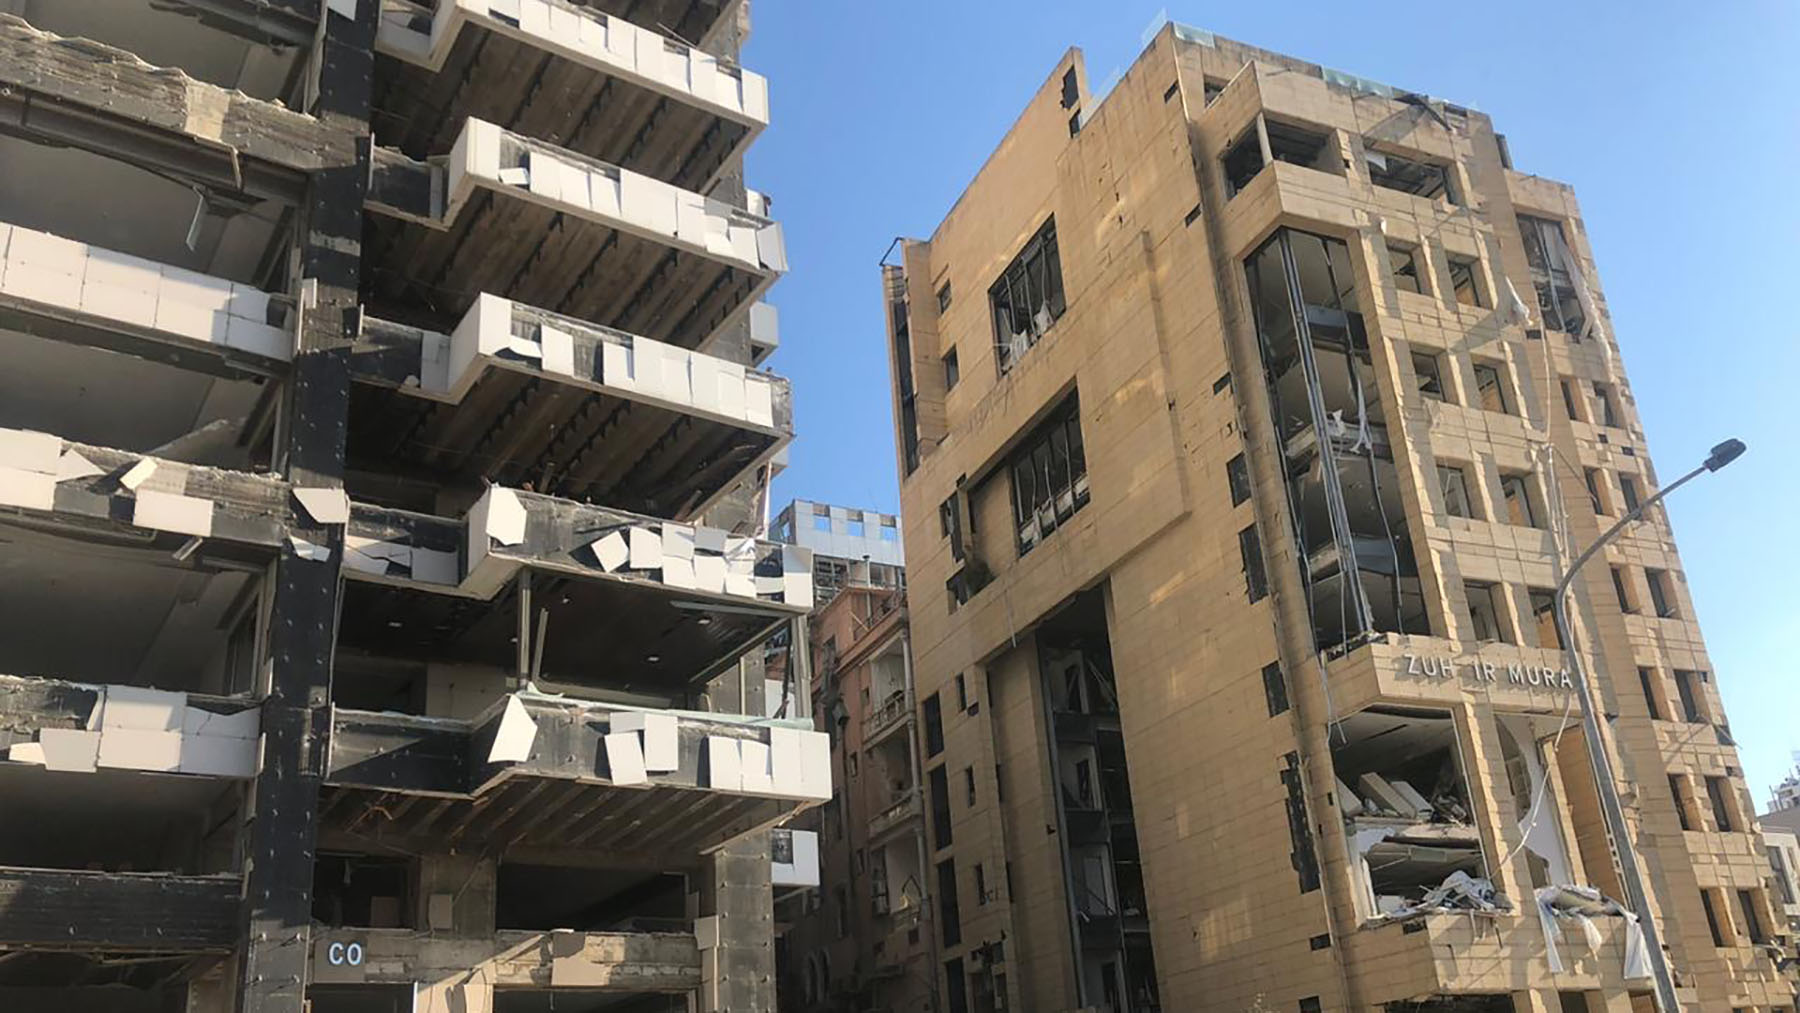 The aftermath of Tuesday's explosion as seen in downtown Beirut. (Photo by Serene Dardari/Anera)